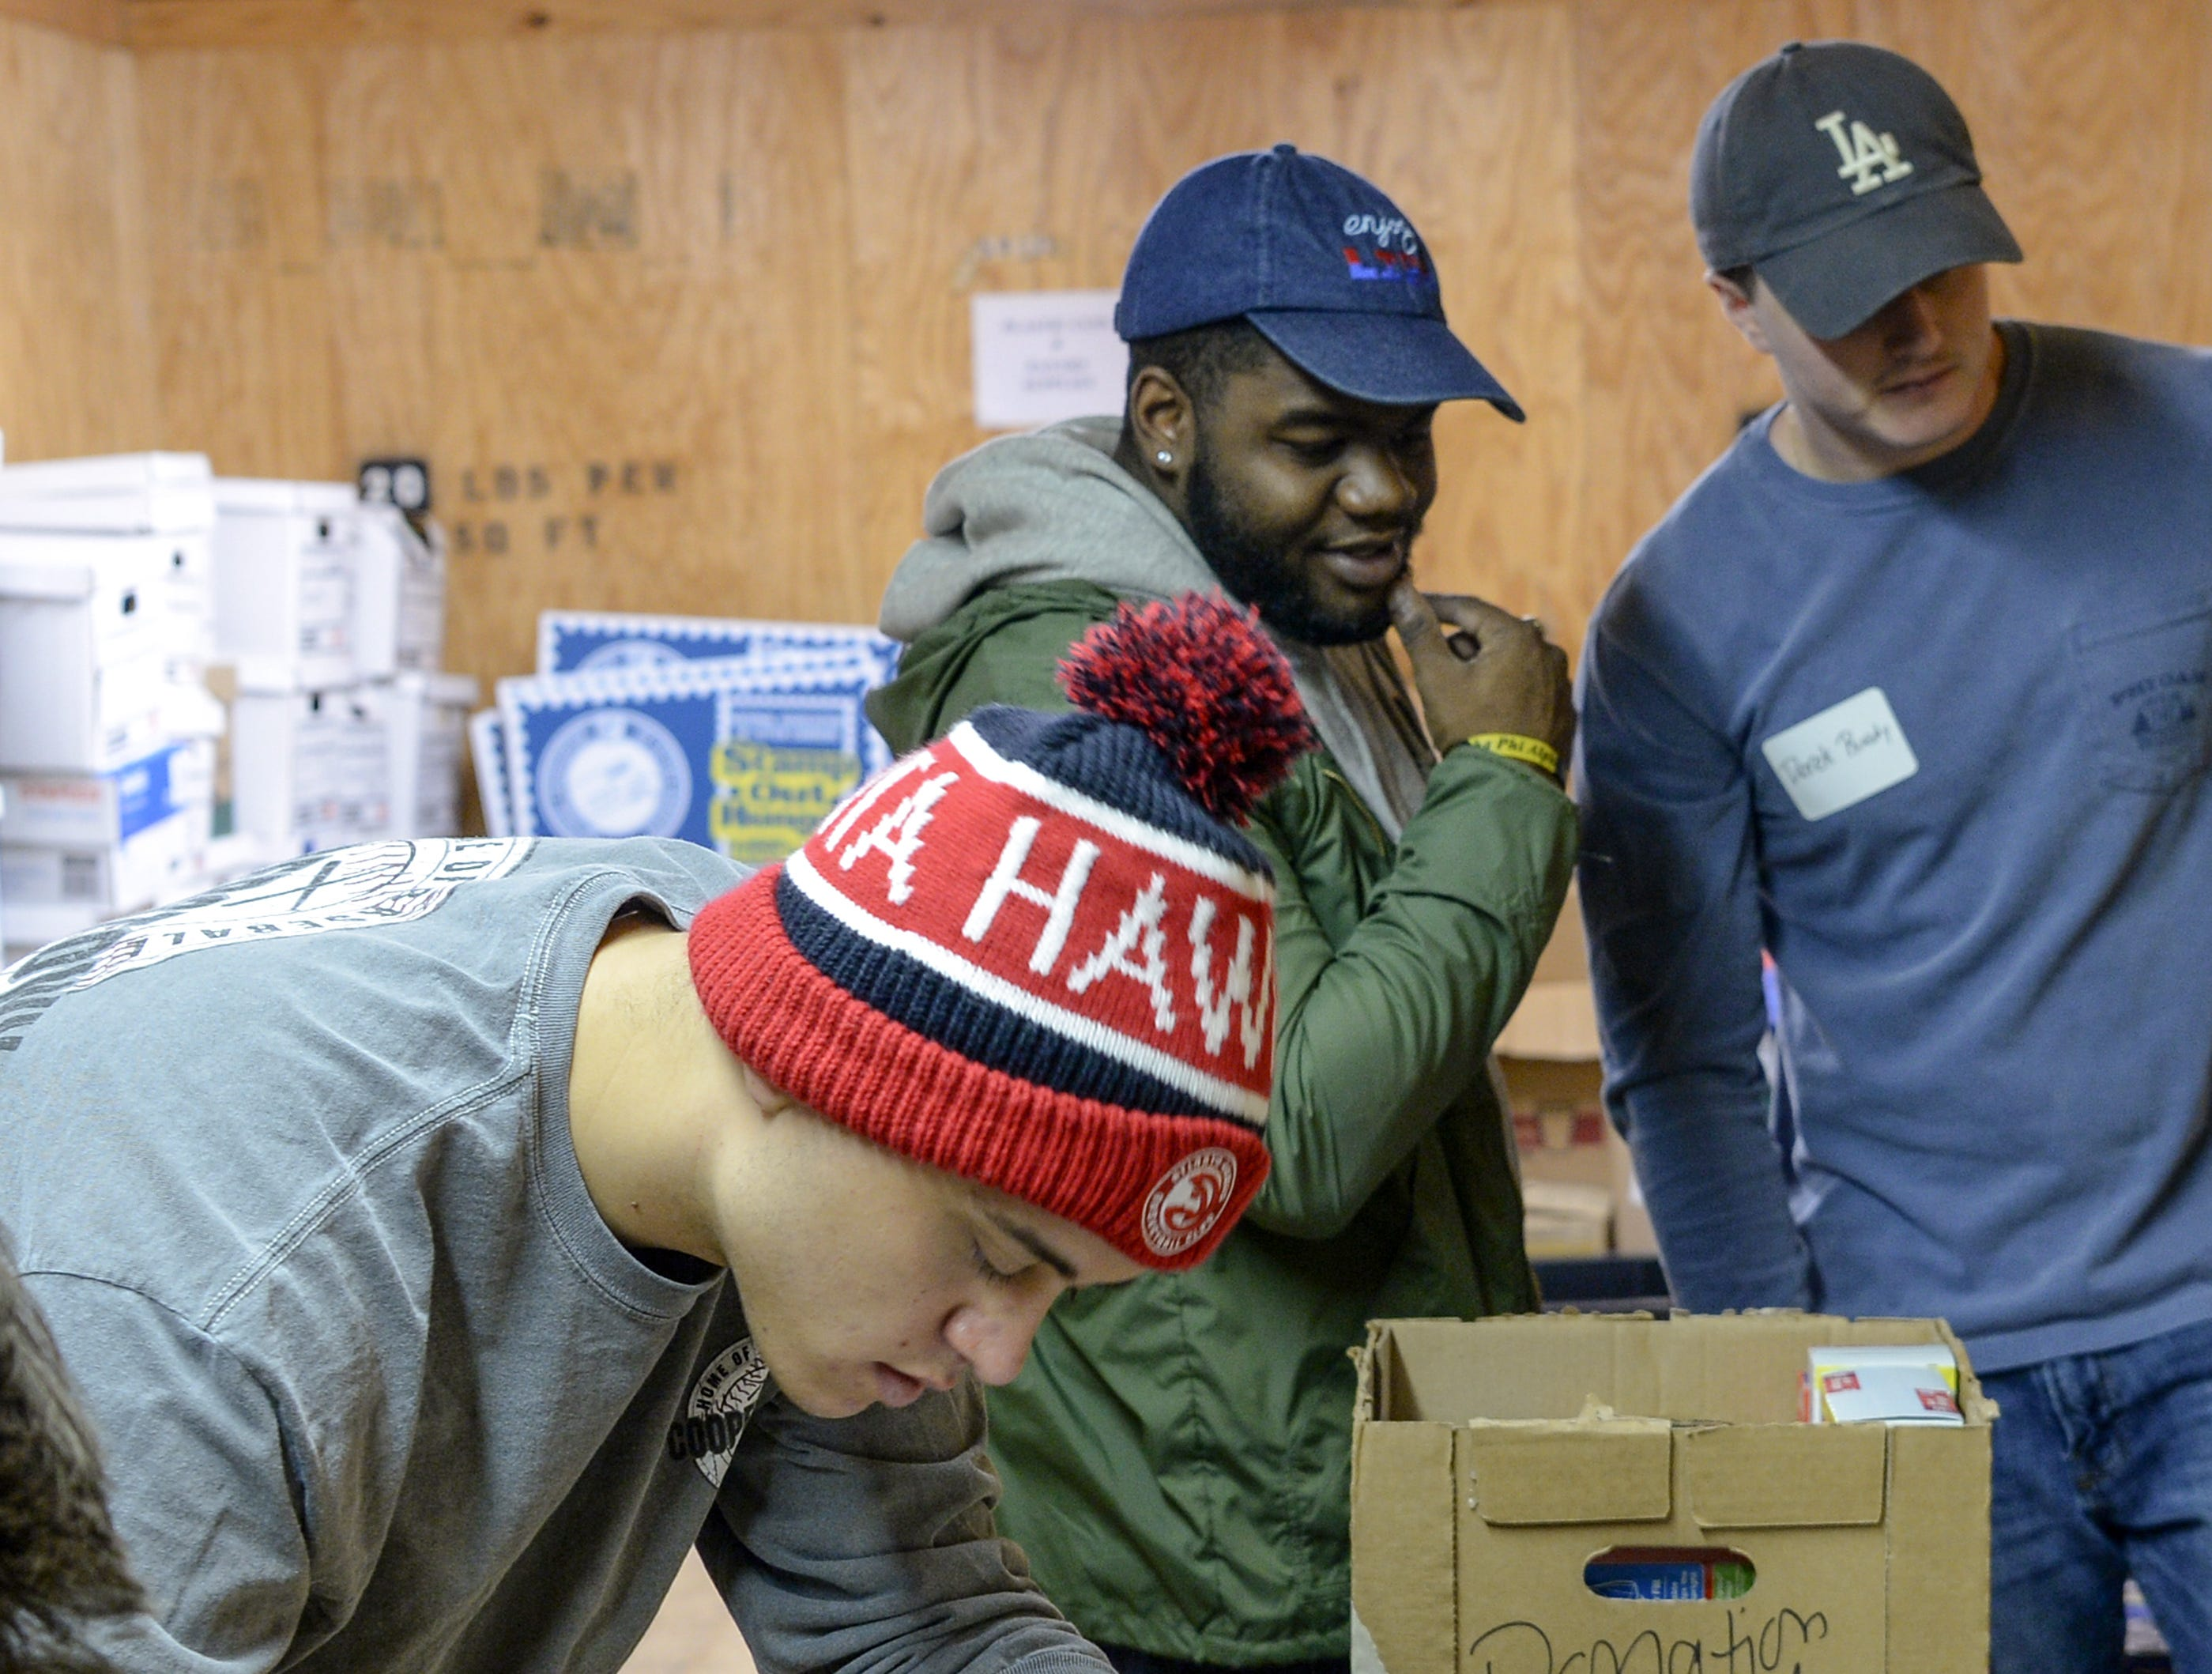 Calen Confer, left, with Phi Gamma Delta fraternity members and Jerome King, left, of Alpha Phi Alpha fraternity, and Derek Ruedy, right, organize school supplies at Clemson Community Care, during the Clemson University Martin Luther King, Jr. Service Day in Clemson January 21, 2019.